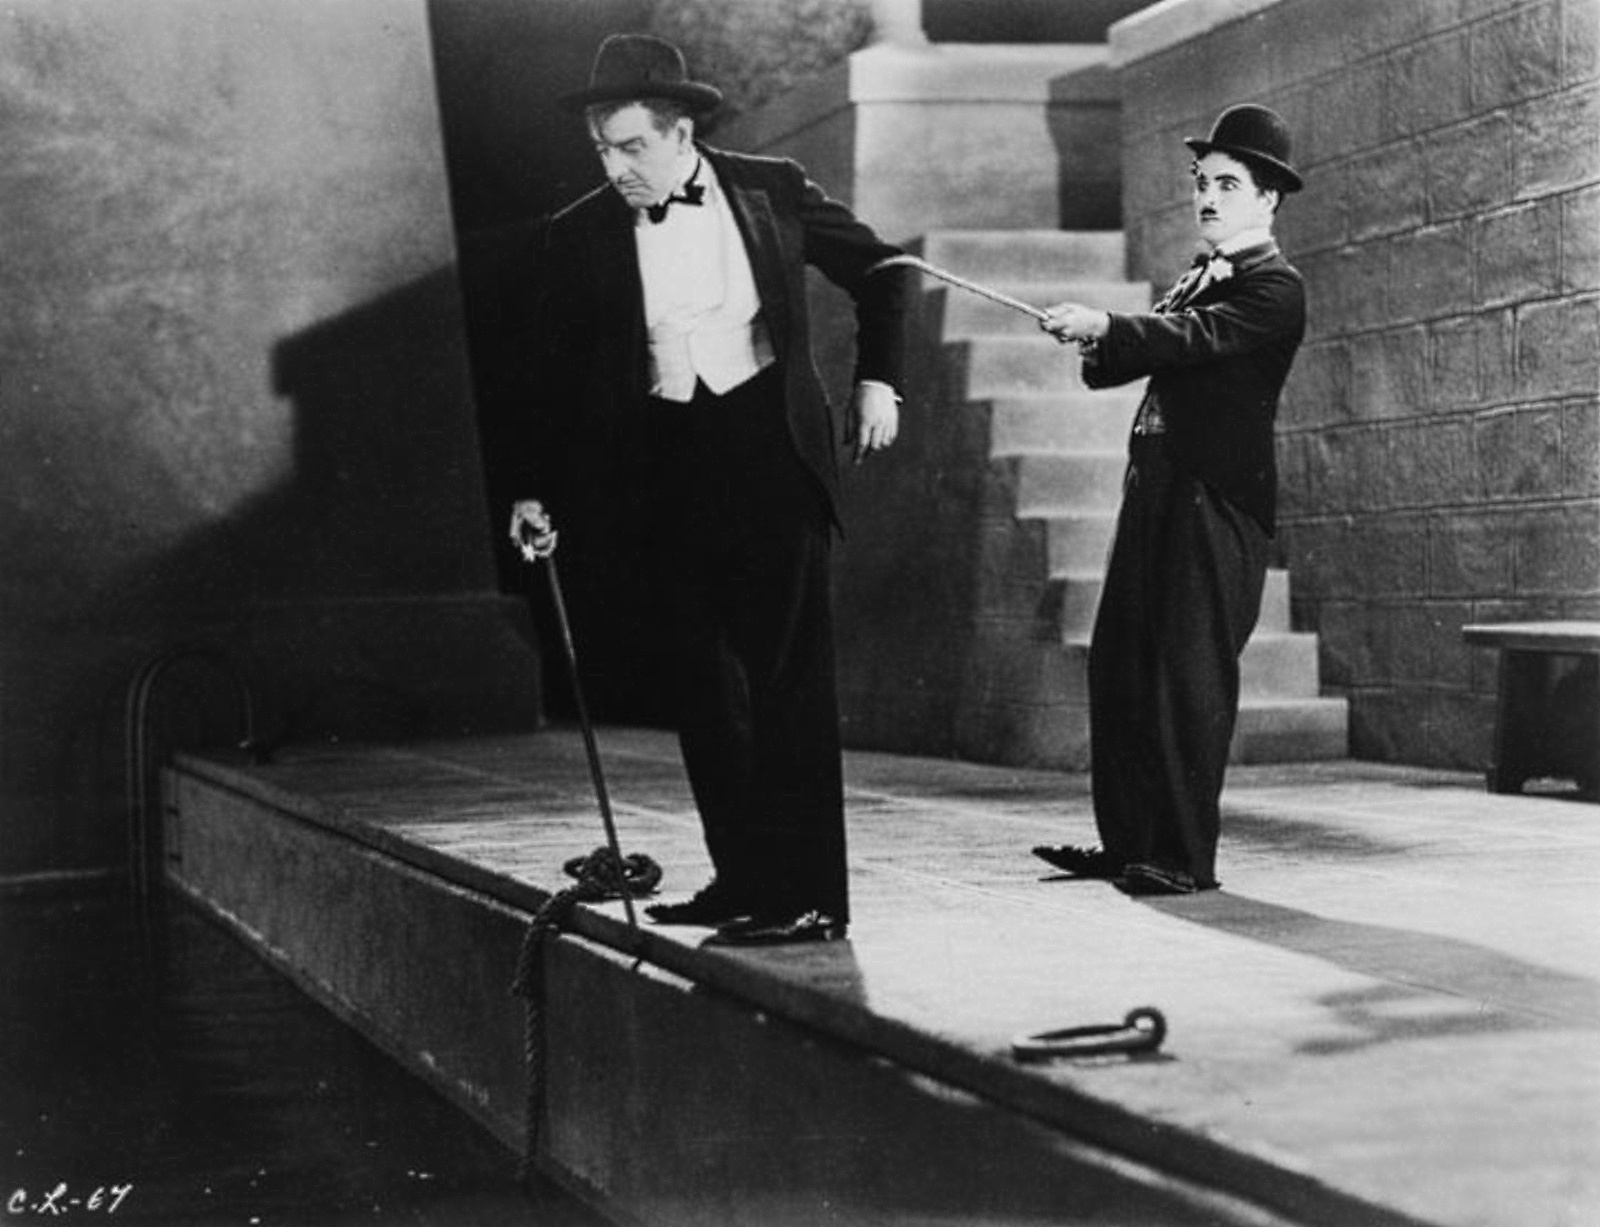 an introduction to the charlie chaplin in the movie city lights Charlie chaplin's city lights begins with the tramp sleeping on a monument as   and the stage is set for her to believe that he is a rich man throughout the film.